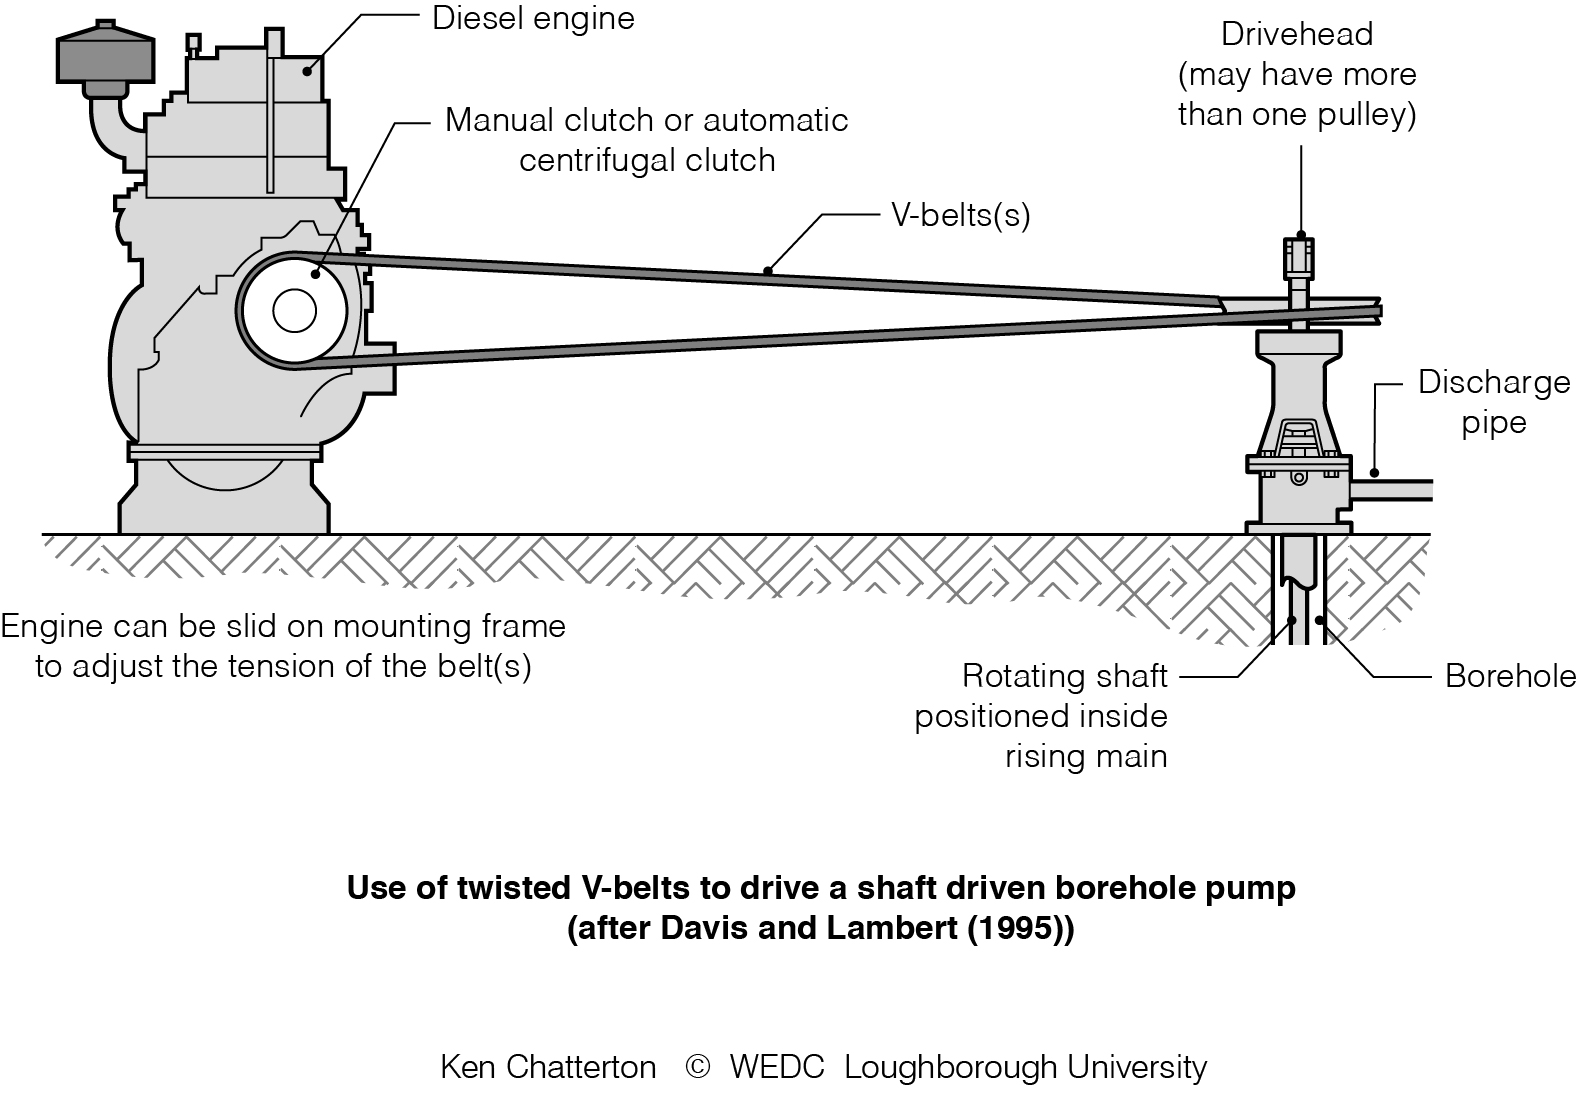 My Wedc Illustrations And Graphics Search The Belt Here Is Diagram Showing Twist Wlc1112 Twisted V Belts For